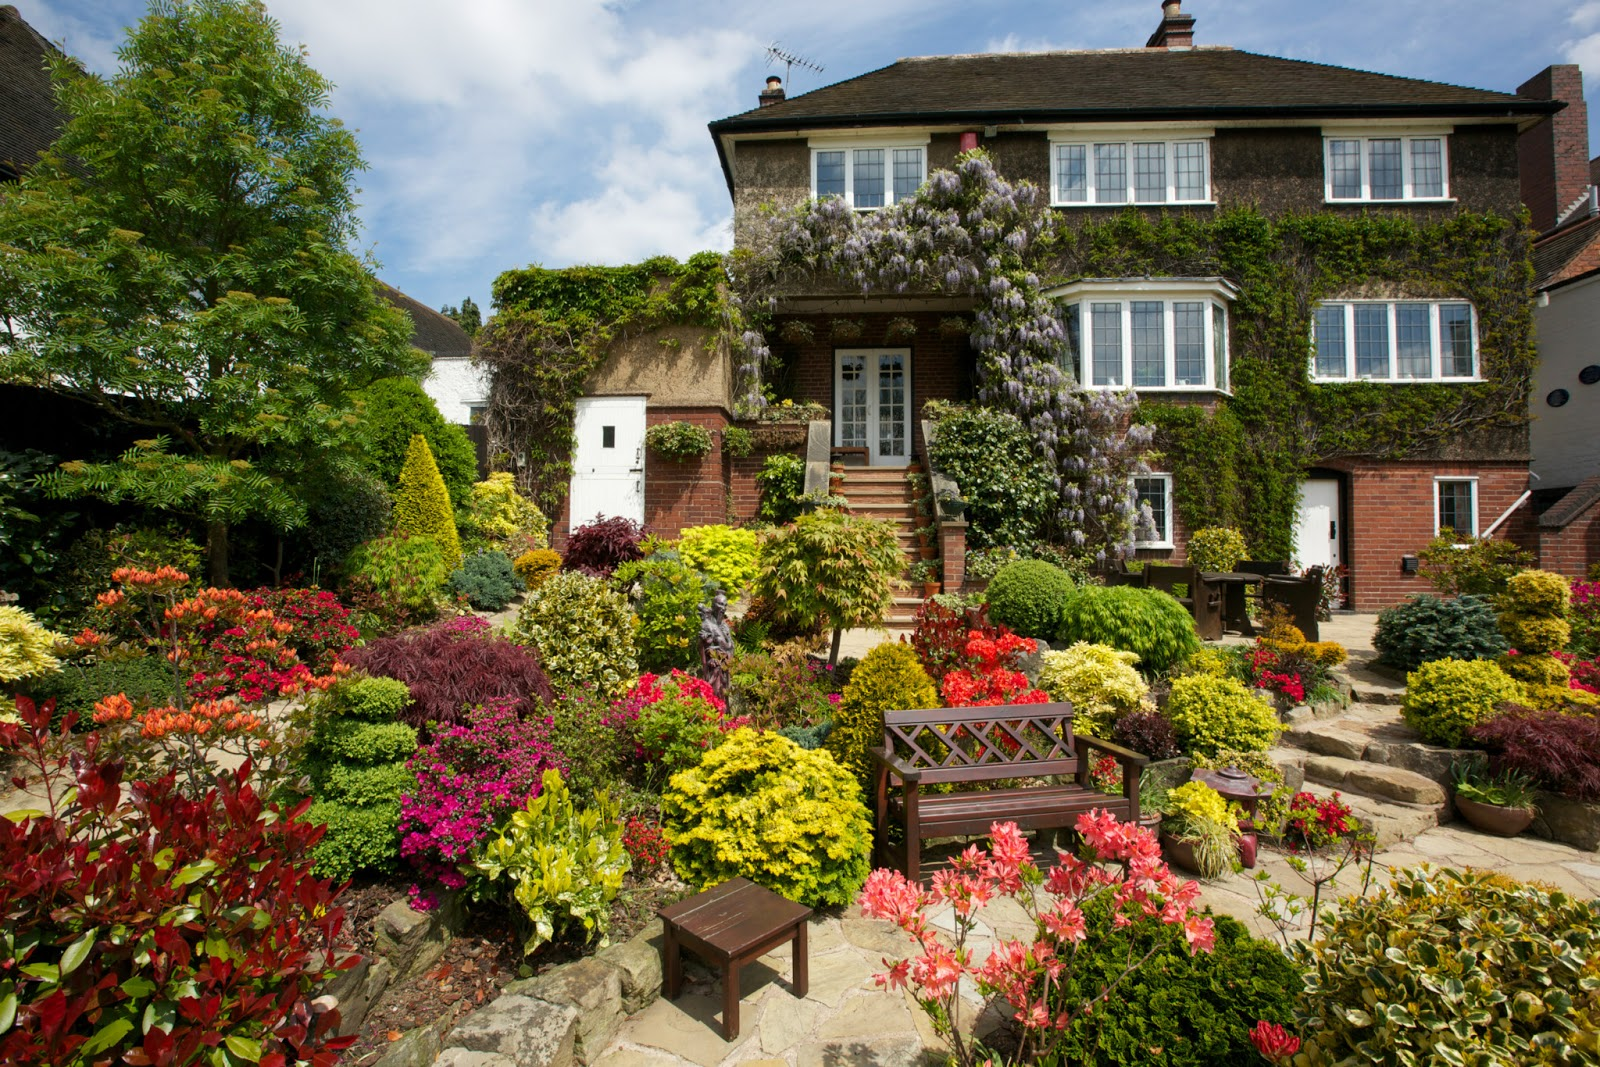 Drelis gardens four seasons garden the most beautiful for Beautiful houses pics